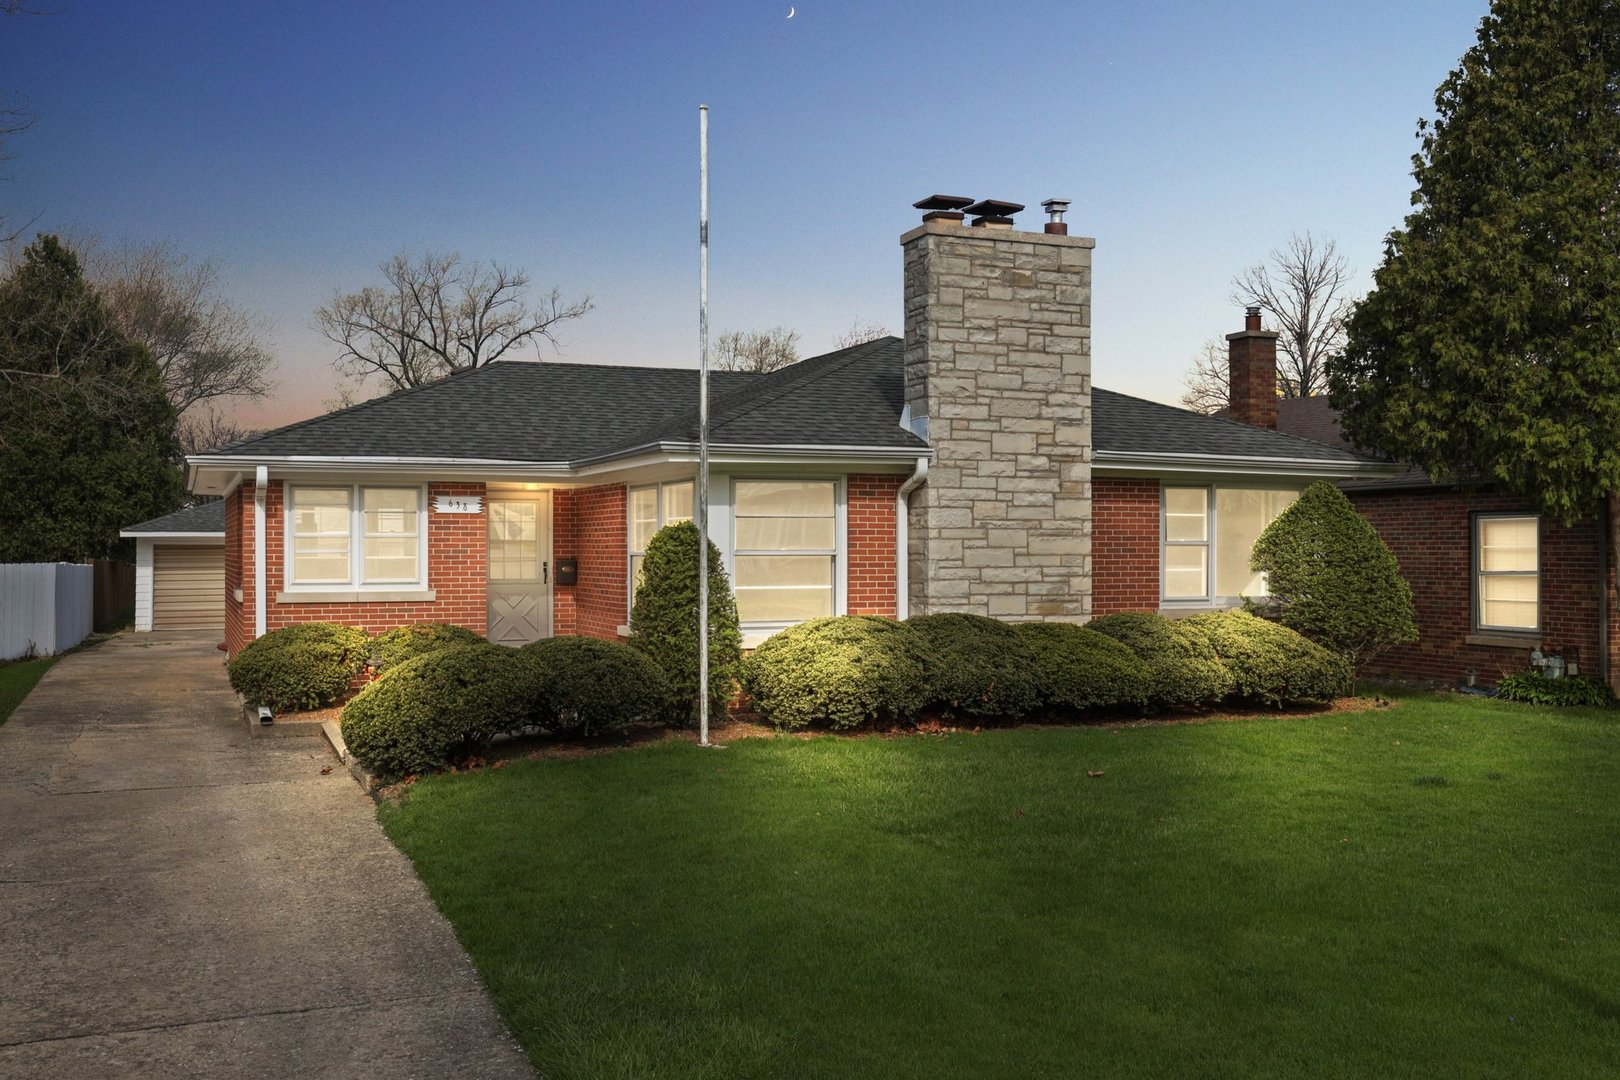 Beautiful brick ranch in desirable South Villa Park location offers 2400 sq ft of quality living space. The main level features 3 nice sized bedrooms, eat in kitchen with white cabinetry, new flooring and new oven range, large living room and full bath. Spectacular hardwood flooring throughout ! Gigantic finished basement with 4th bedroom, large family room, laundry area and shop. Terrific yard and two car garage. Newer roof and furnace. This is a high quality property in a superb location. Hurry, will not last!